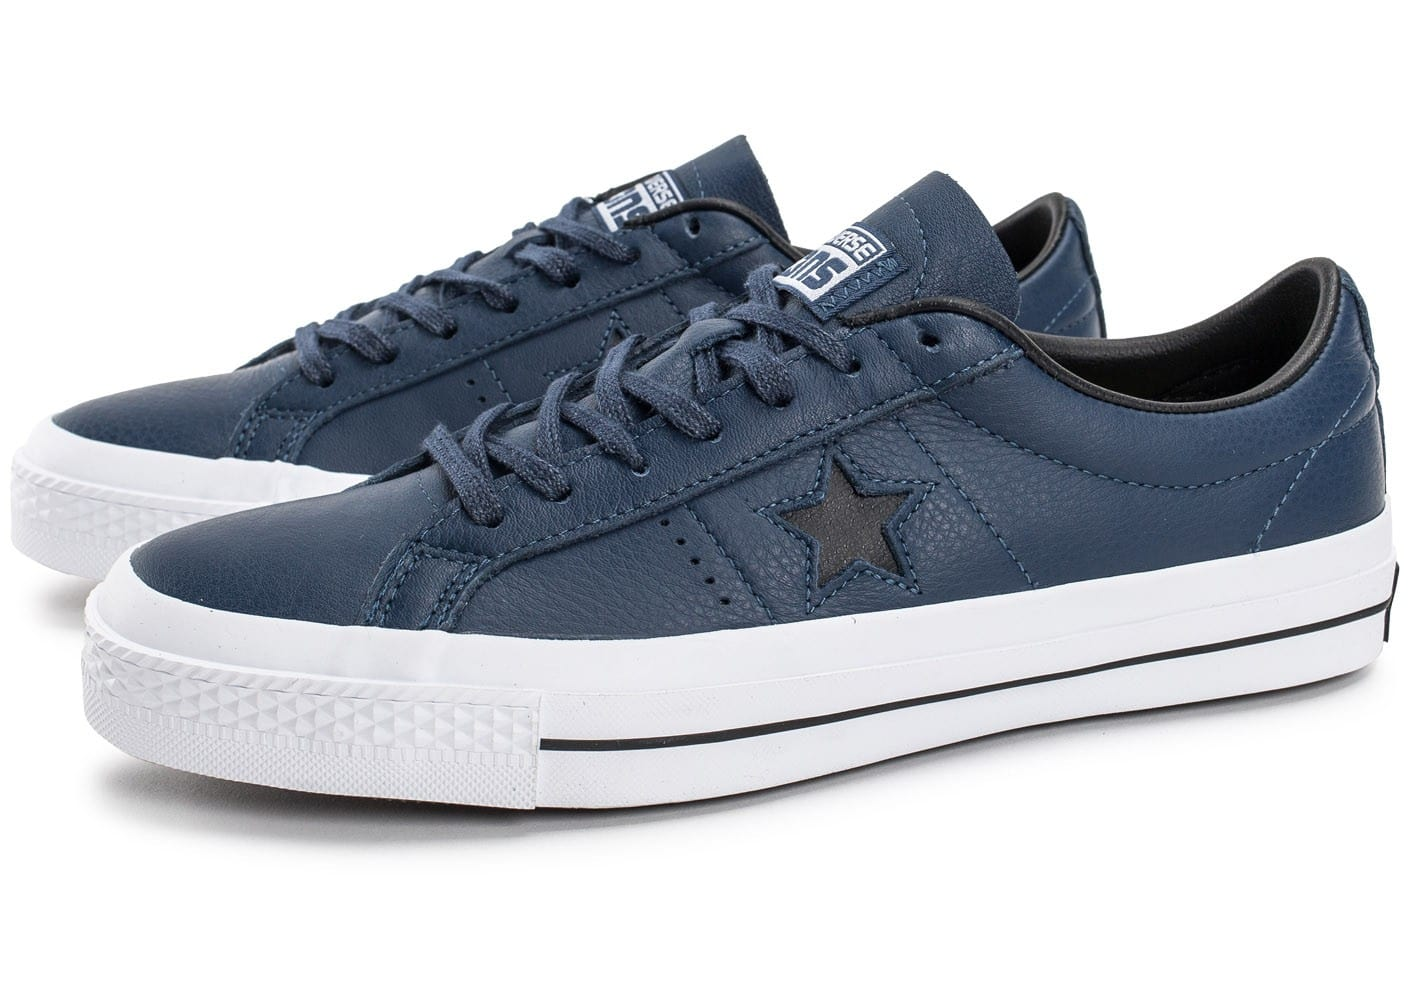 Converse One Star Leather bleu marine - Chaussures Baskets ...